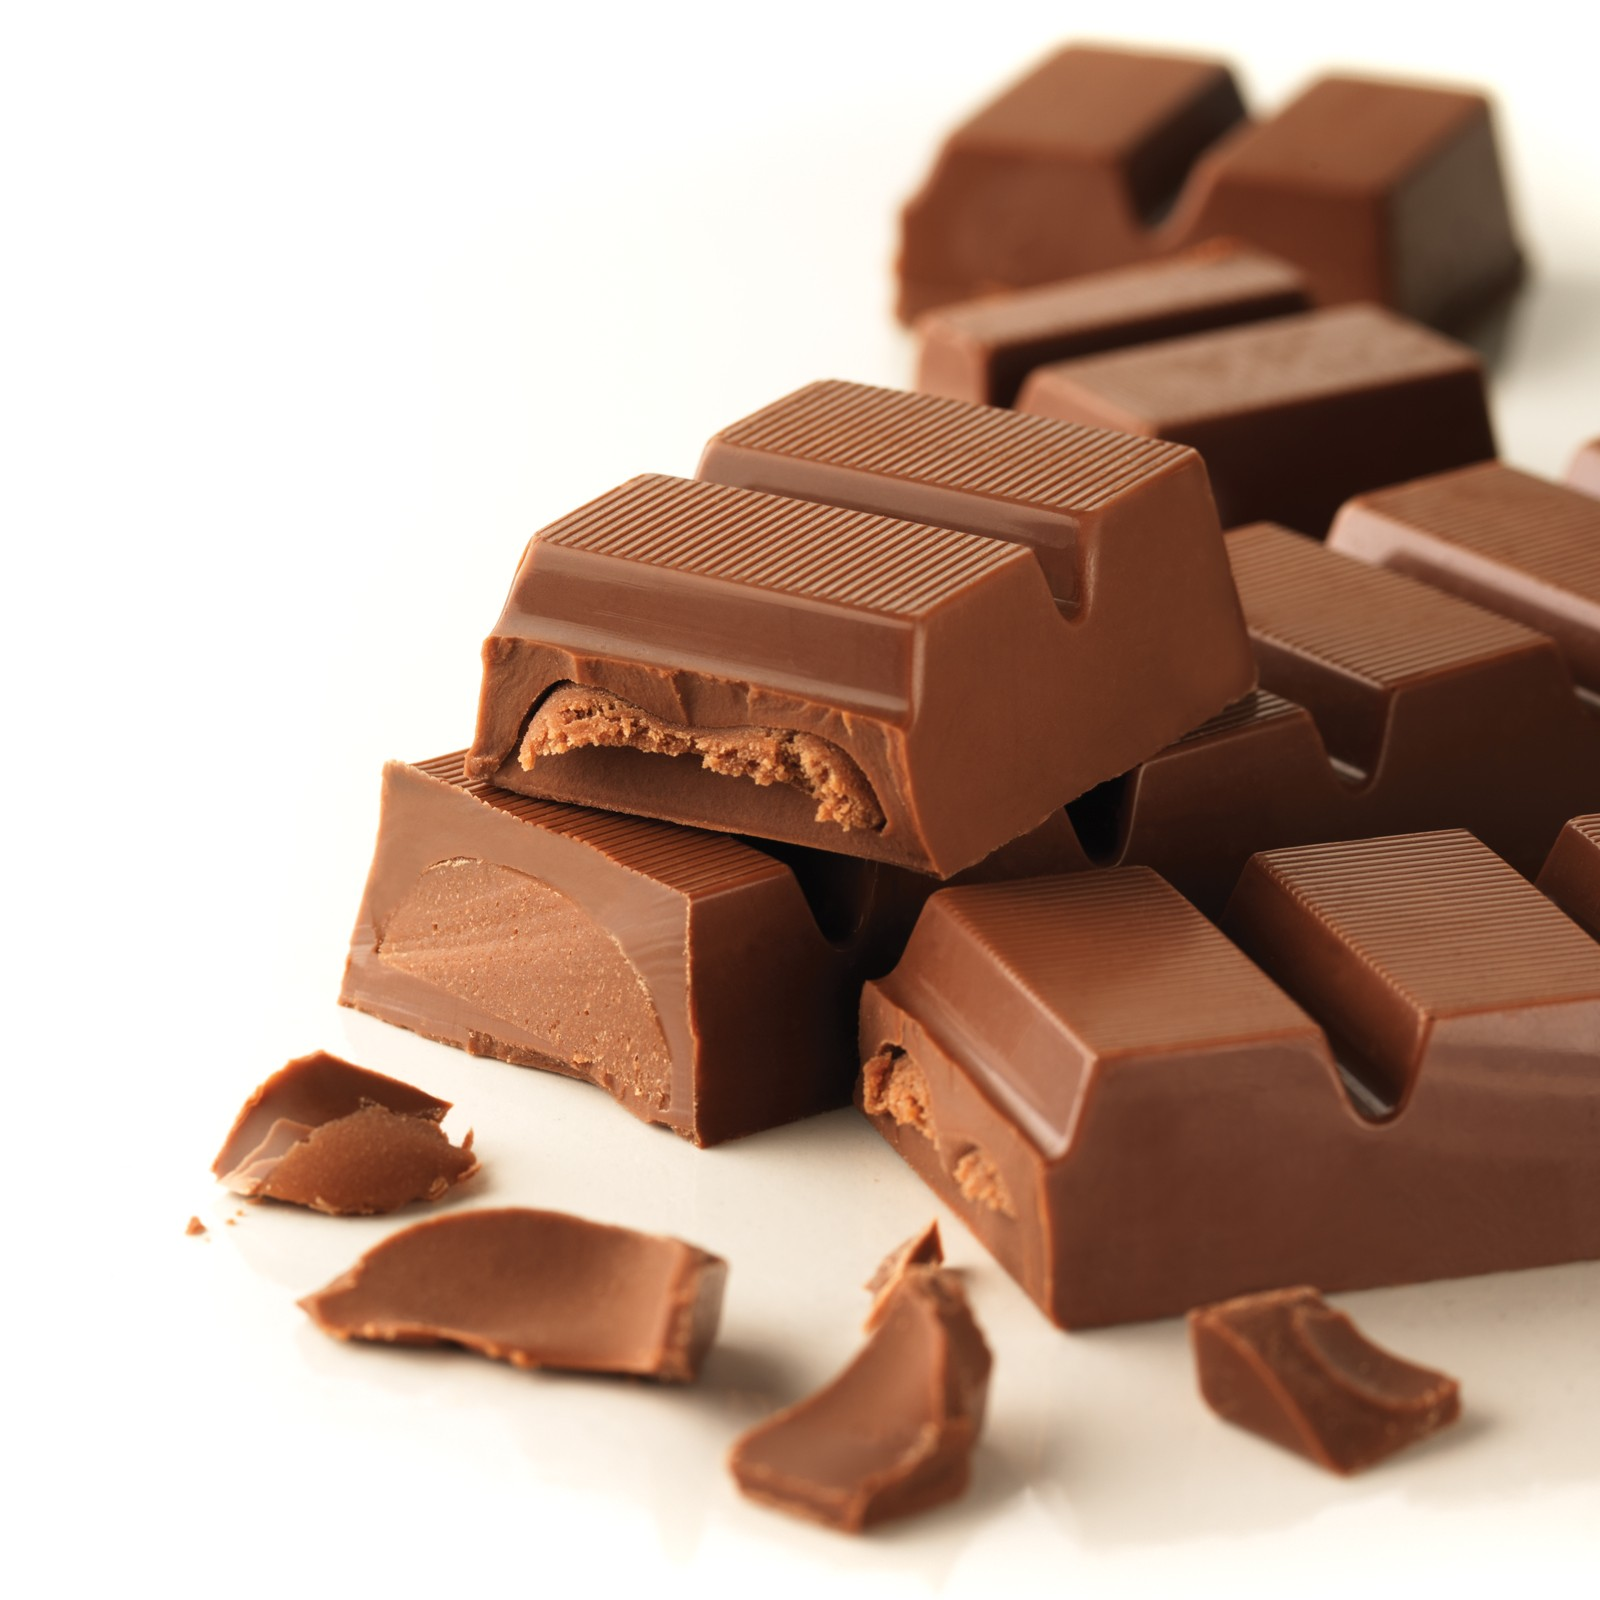 How To Remove Chocolate Stains From Carpet Waukesha